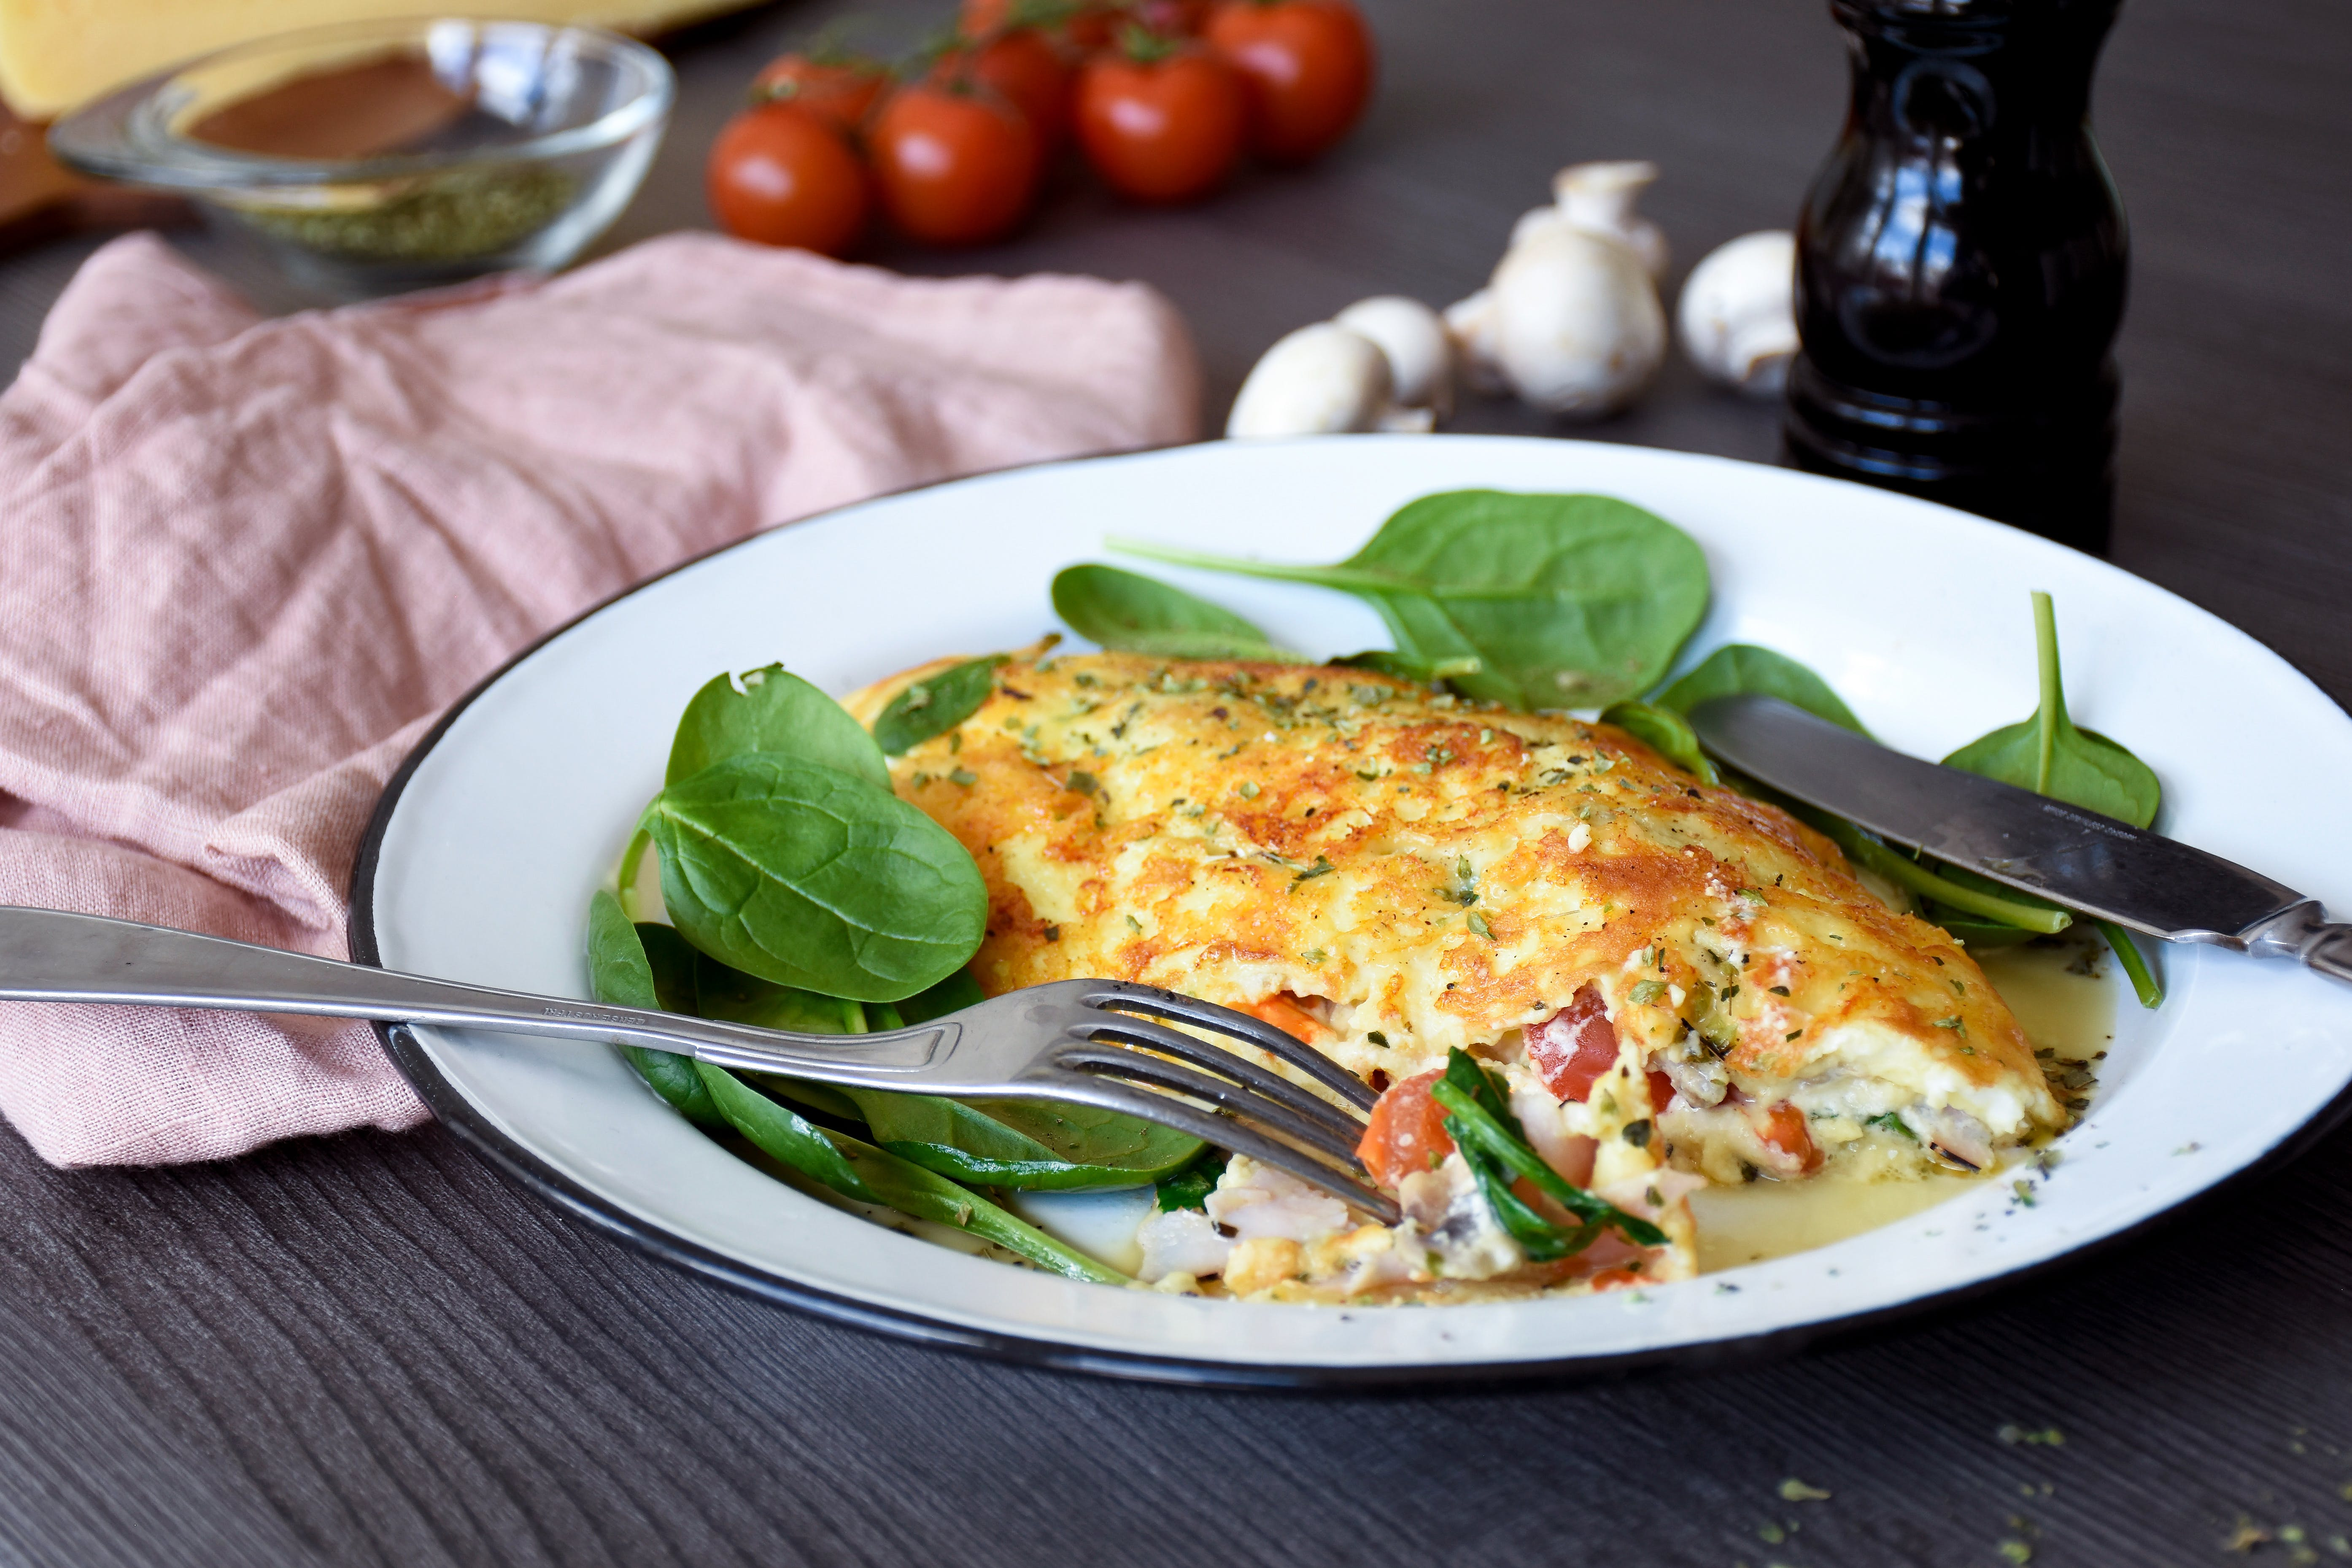 Jill's Cheese Crusted Omelet - A Keto Breakfast Favorite